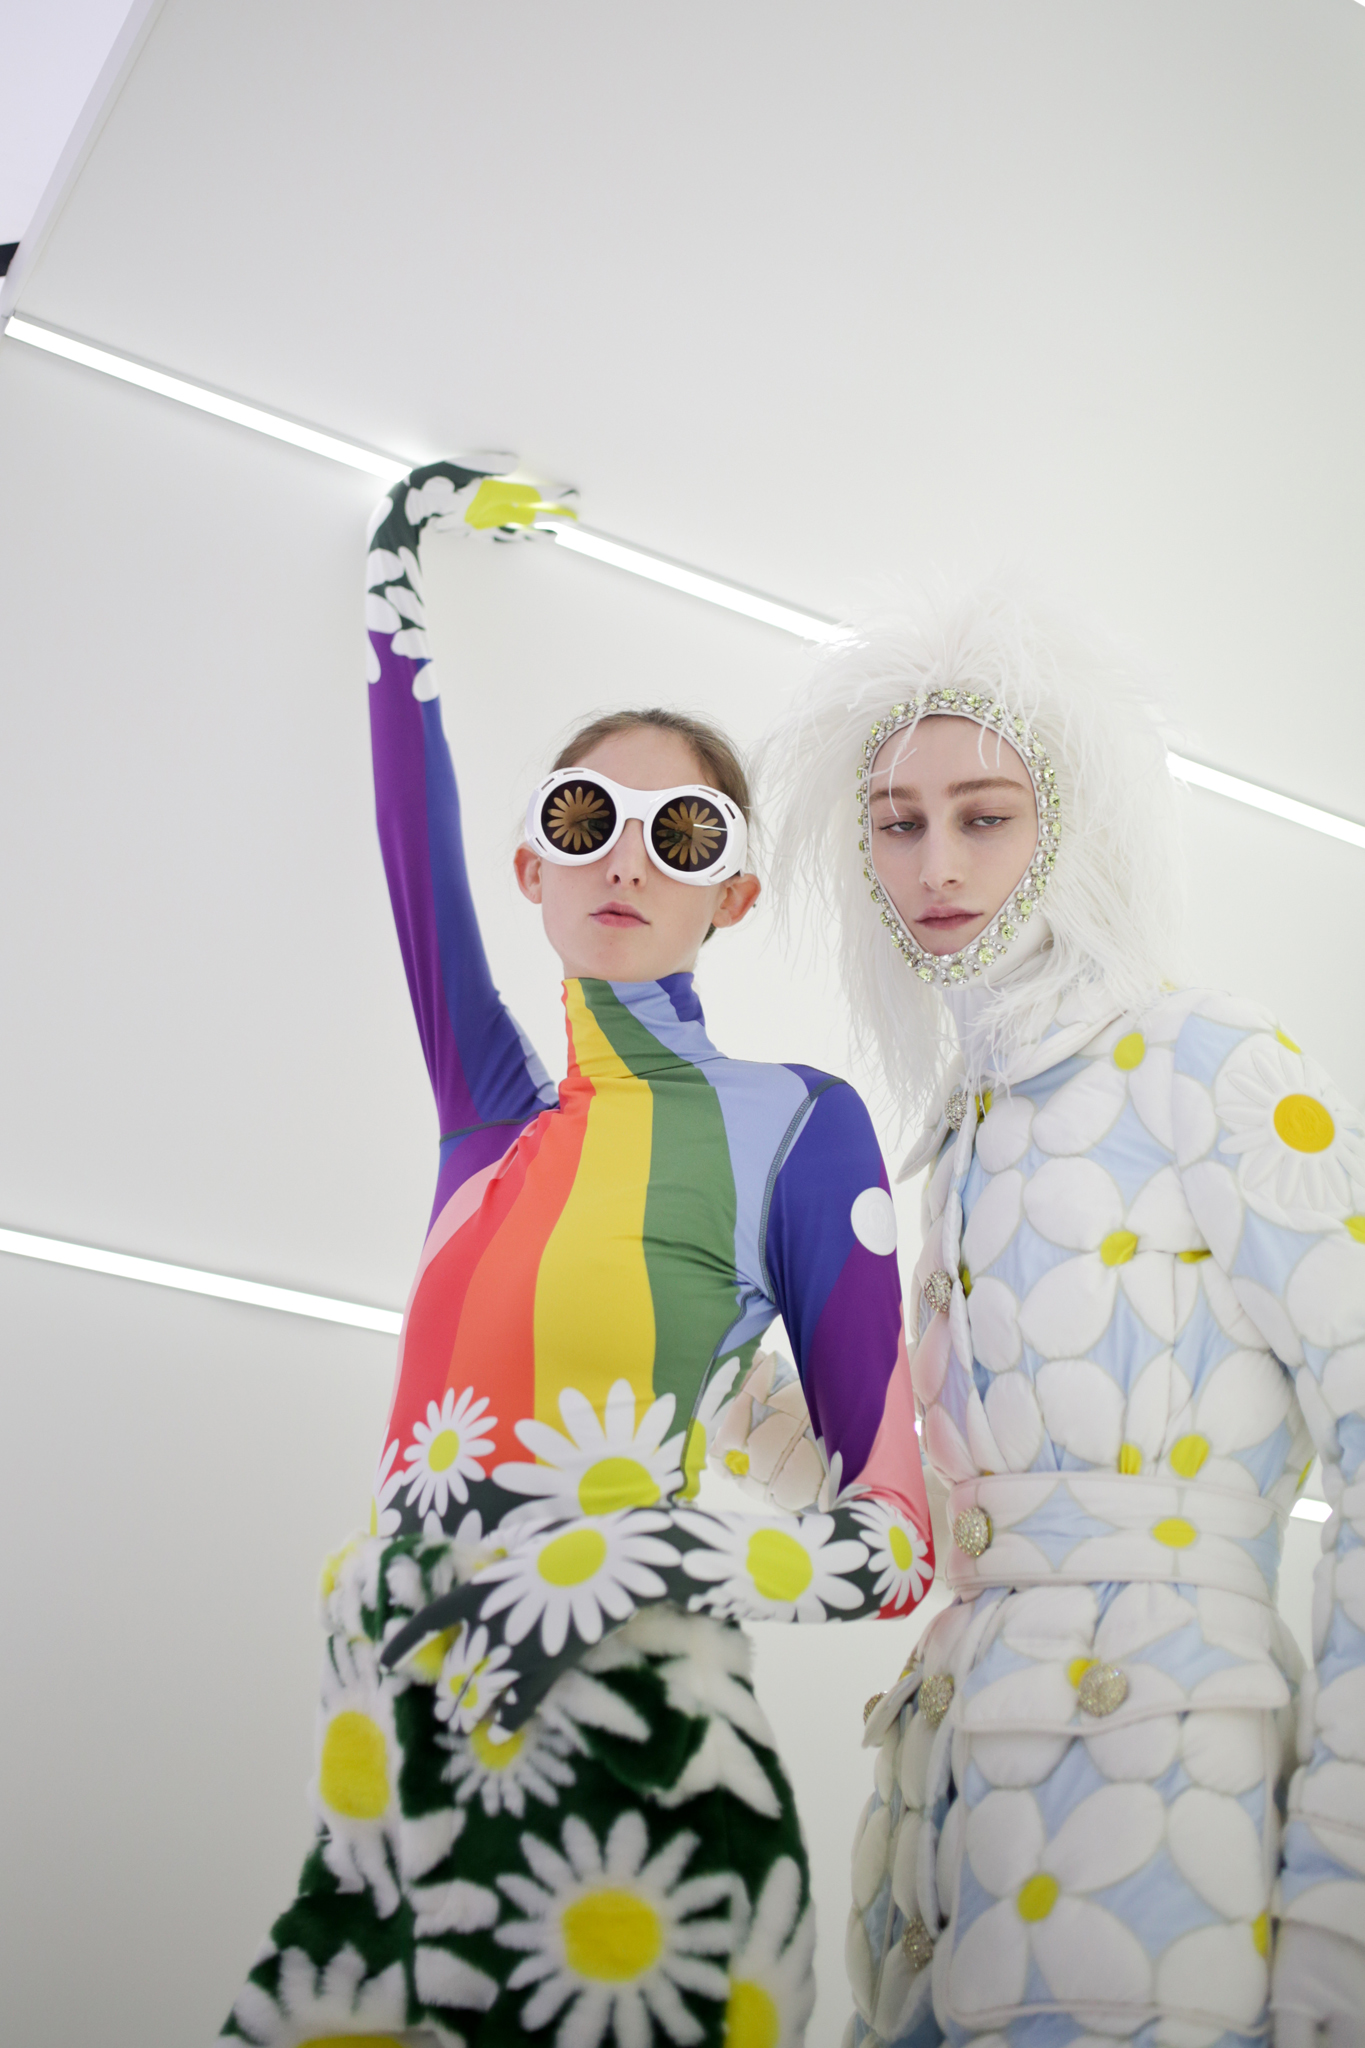 Backstage at Moncler Genius RTW Fall 2020